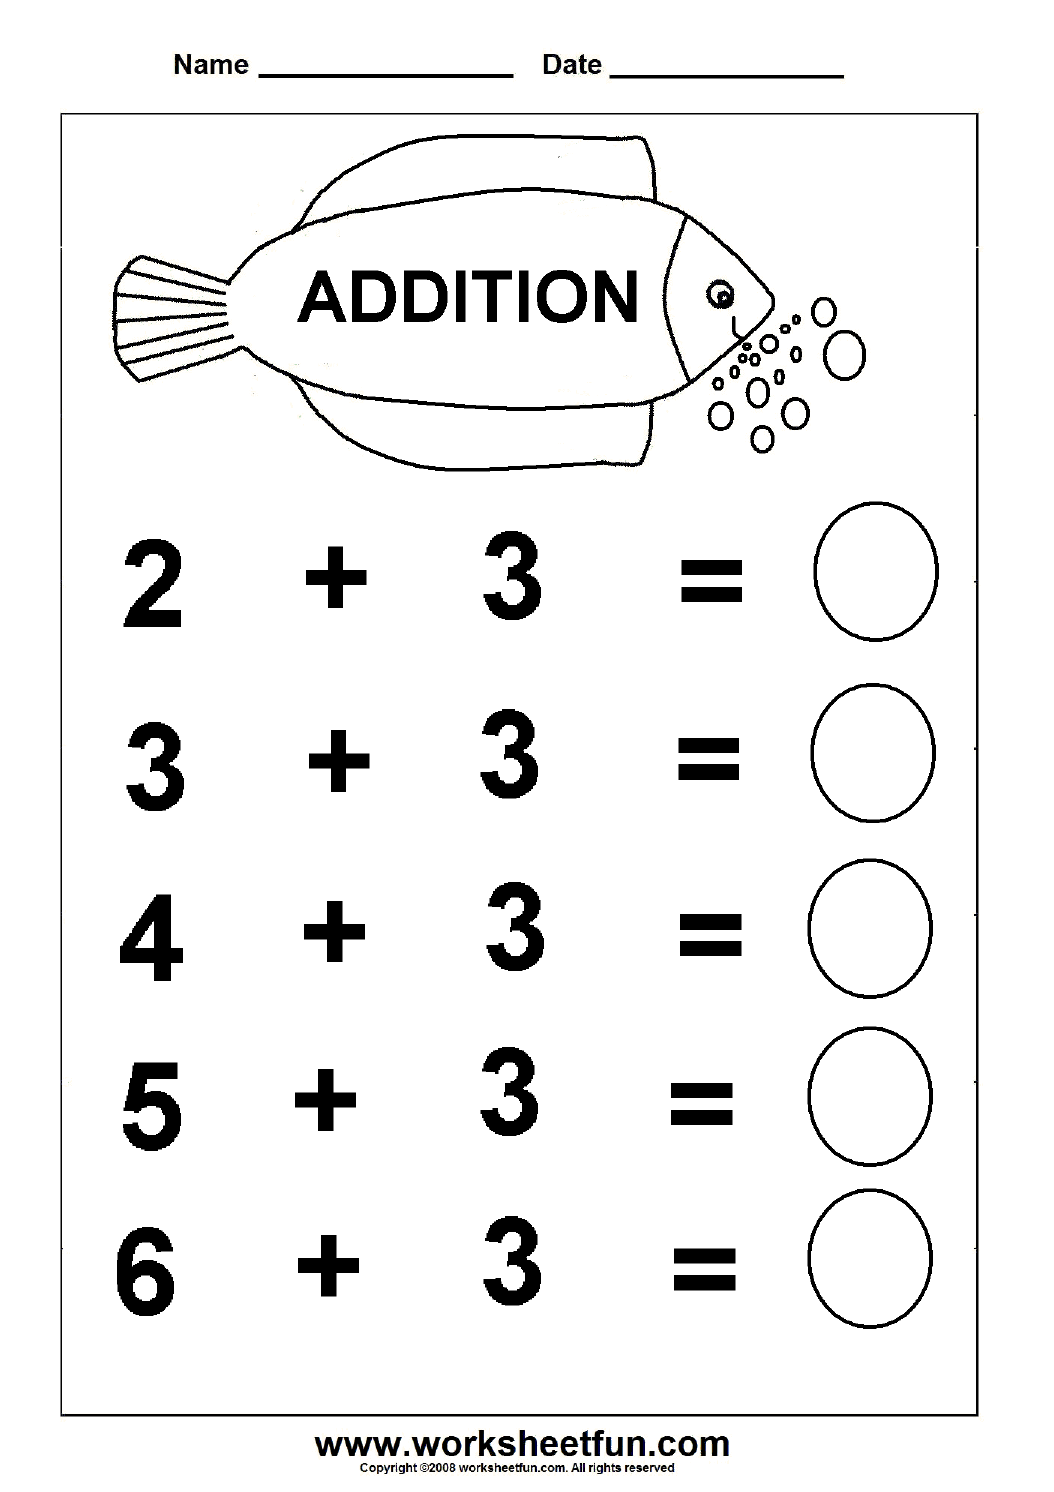 Worksheets Kindergarten Addition Worksheets beginner addition 6 kindergarten worksheets free first grade worksheets